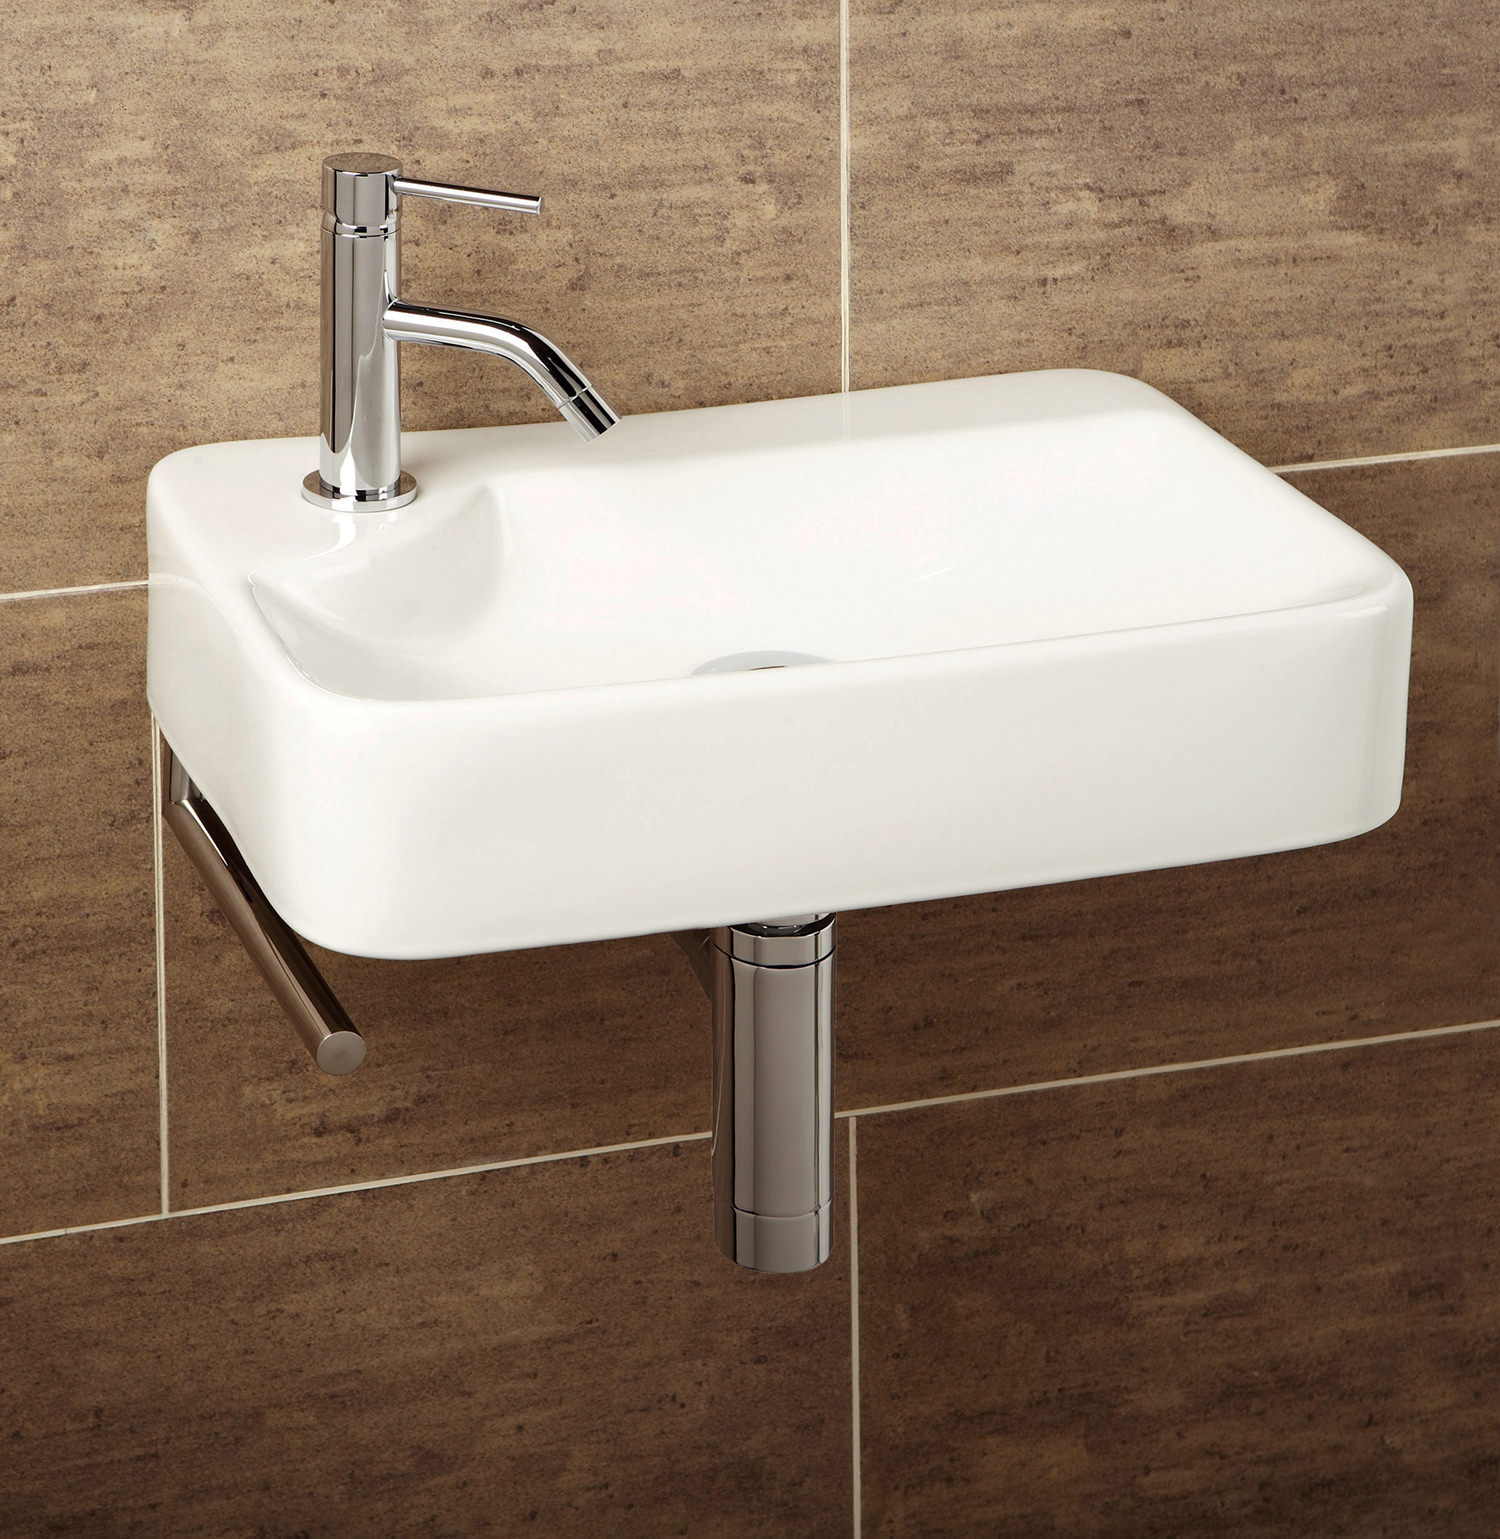 Hib malo lugo cloakroom basin with towel rail 8932 - Slim cloakroom basin ...